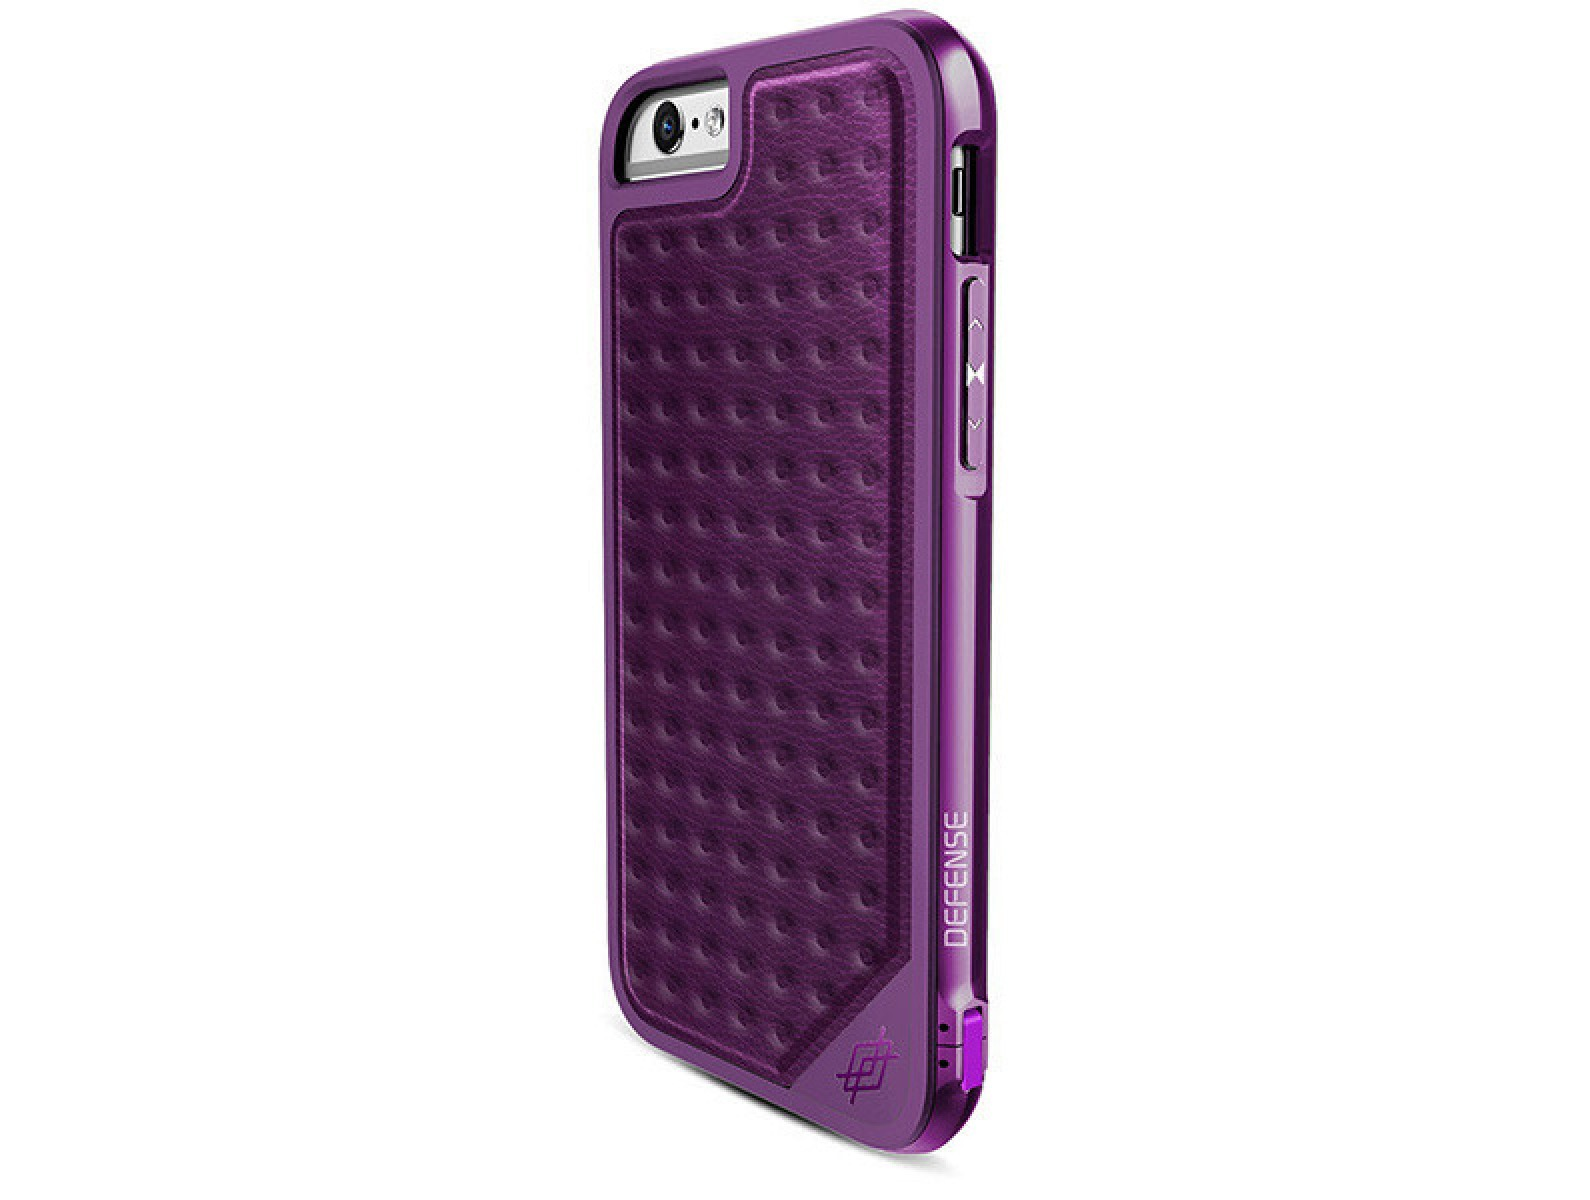 sports shoes 84844 e23ed Review: X-Doria's Protective iPhone 6s Case Is Tough but Luxurious ...